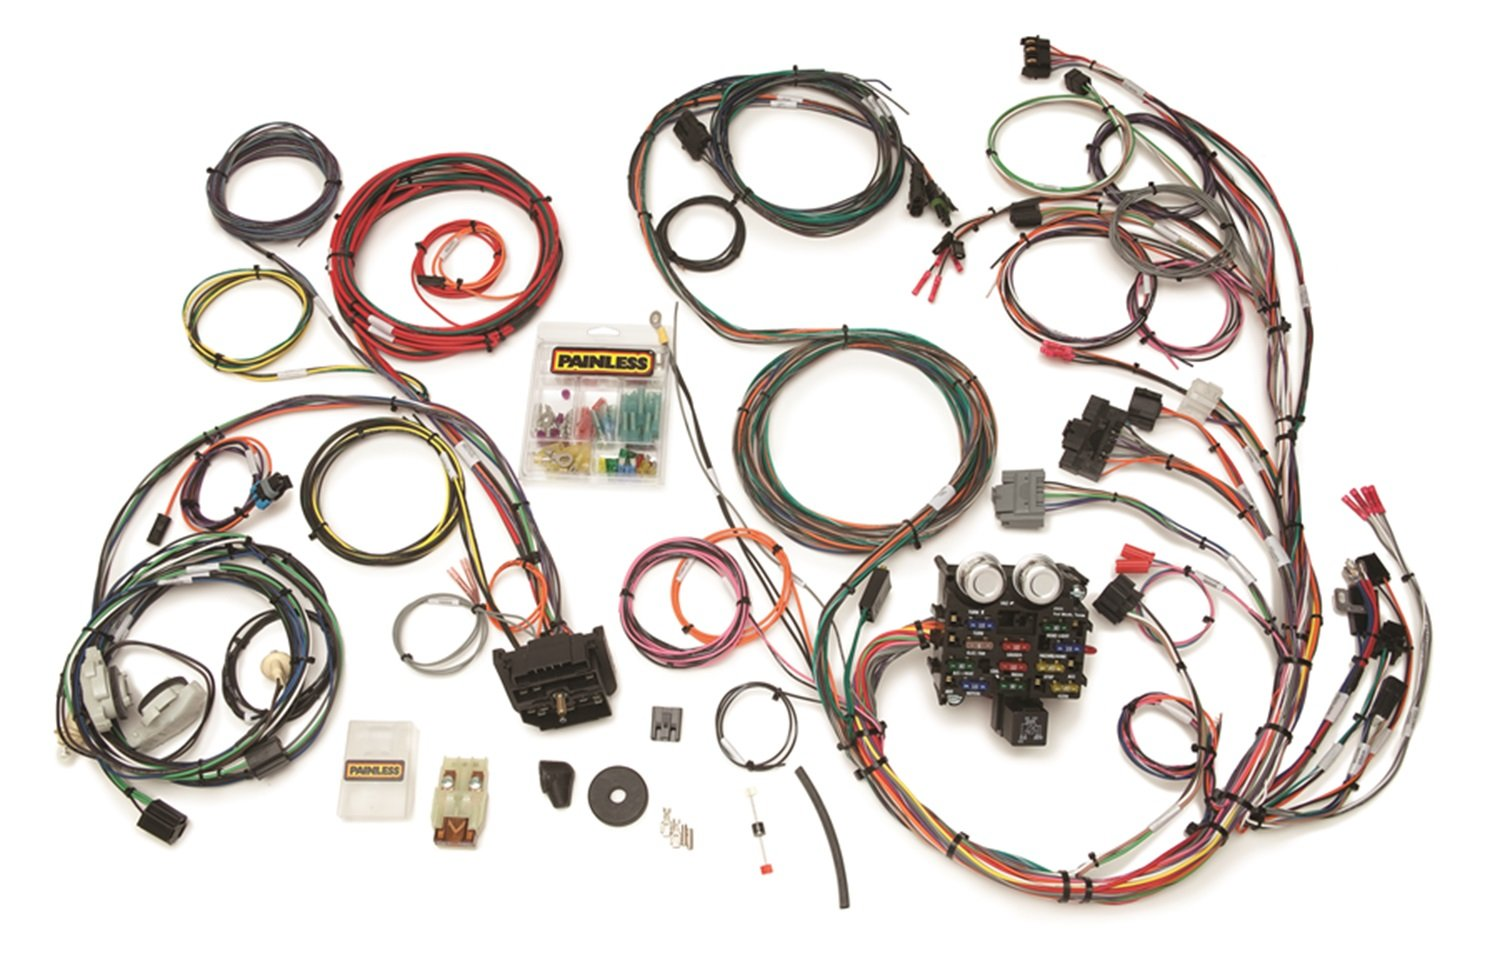 Painless Wire 10111 Chassis Harness For Jeep Wrangler Yj 80off Wiring And